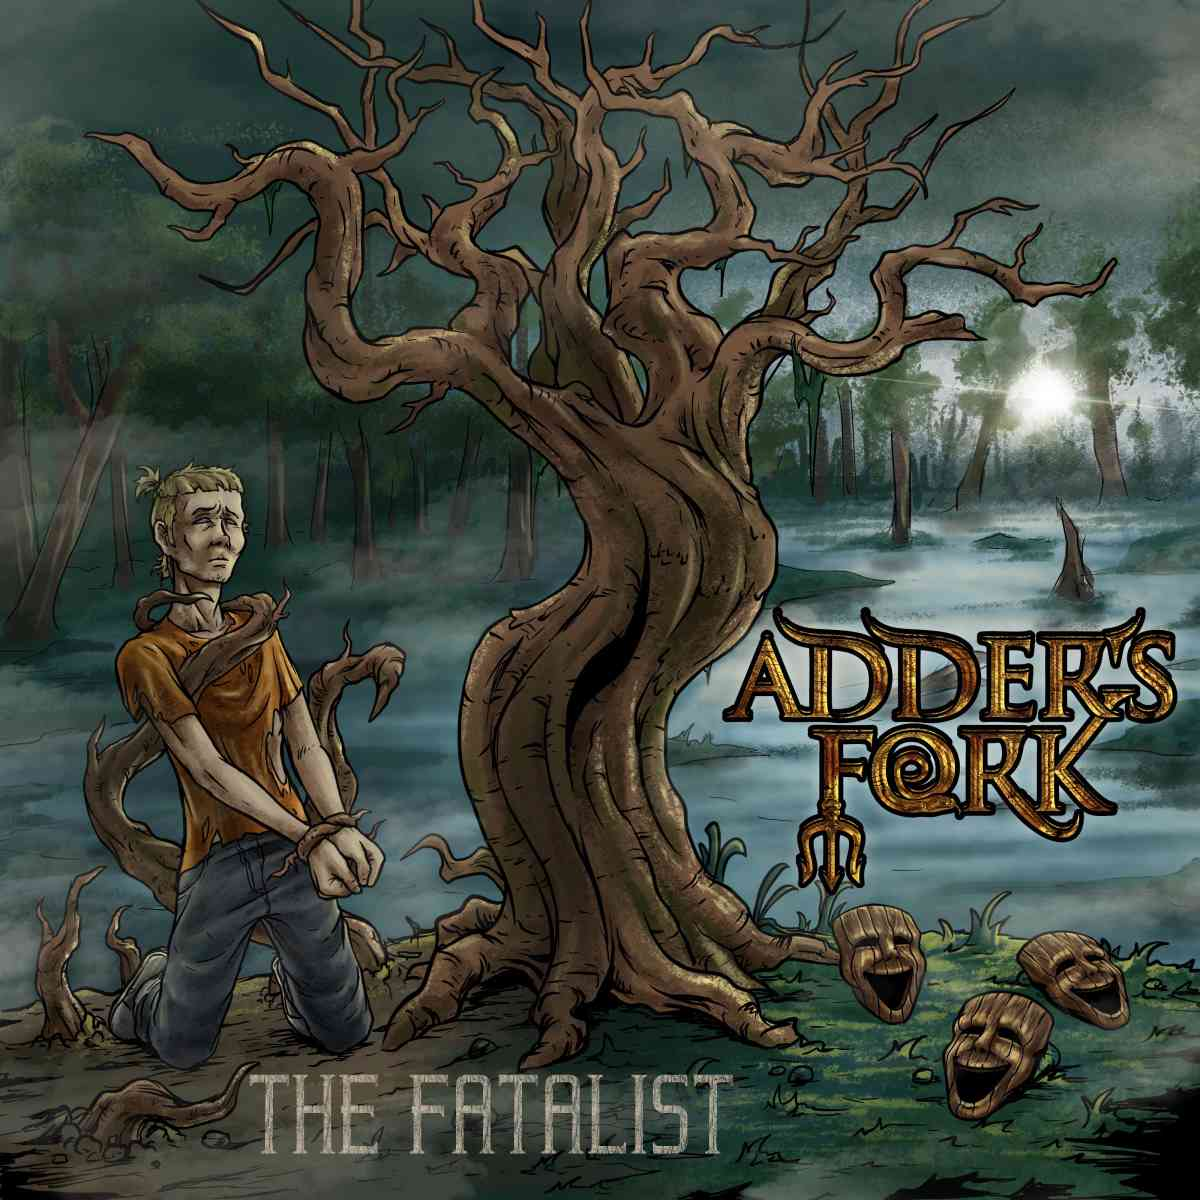 adders fork - The Fatalist - album cover